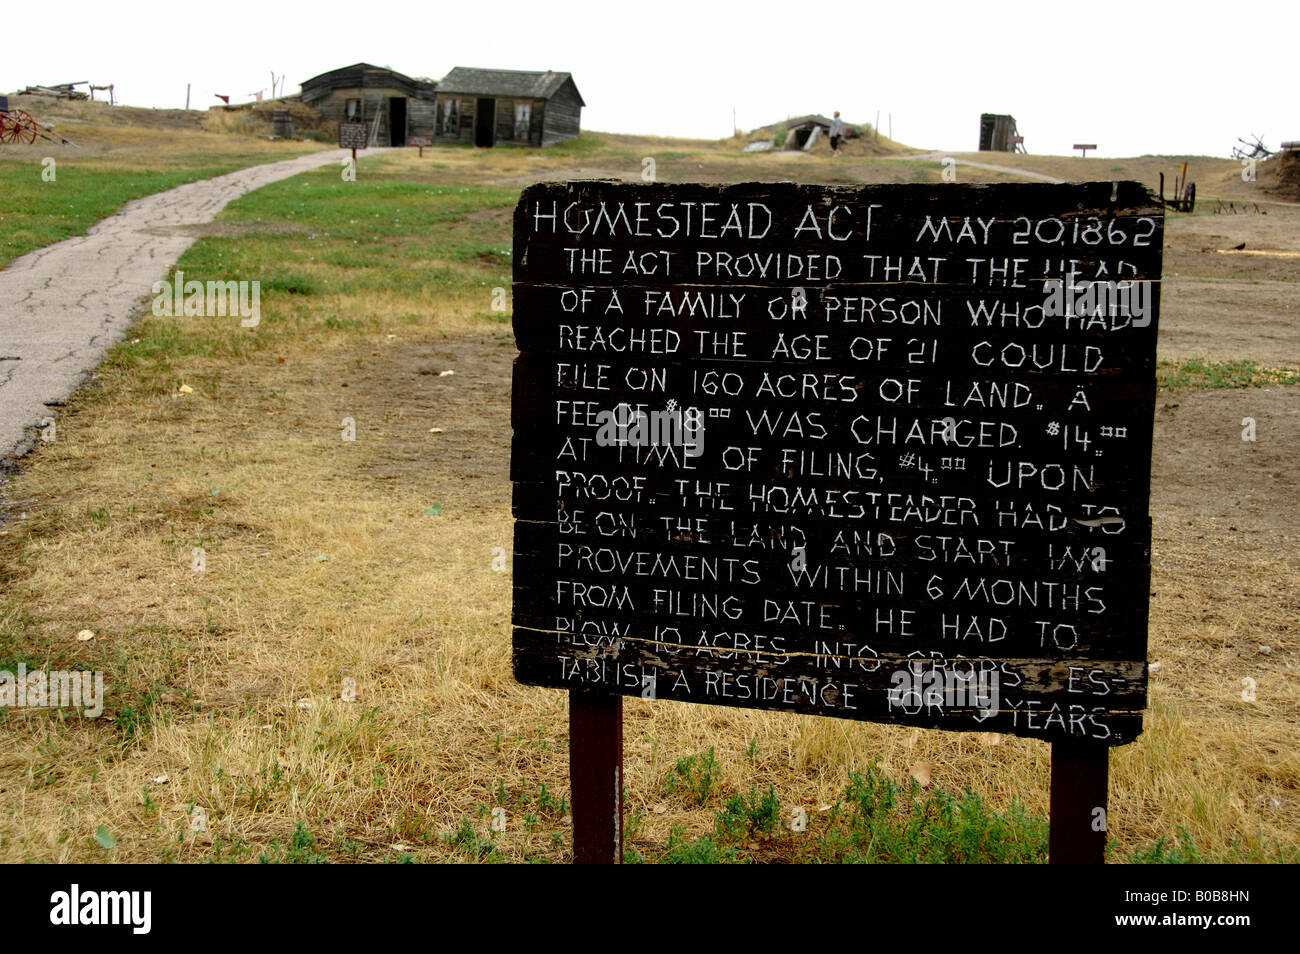 Homestead Act Stock Photos & Homestead Act Stock Images - Alamy